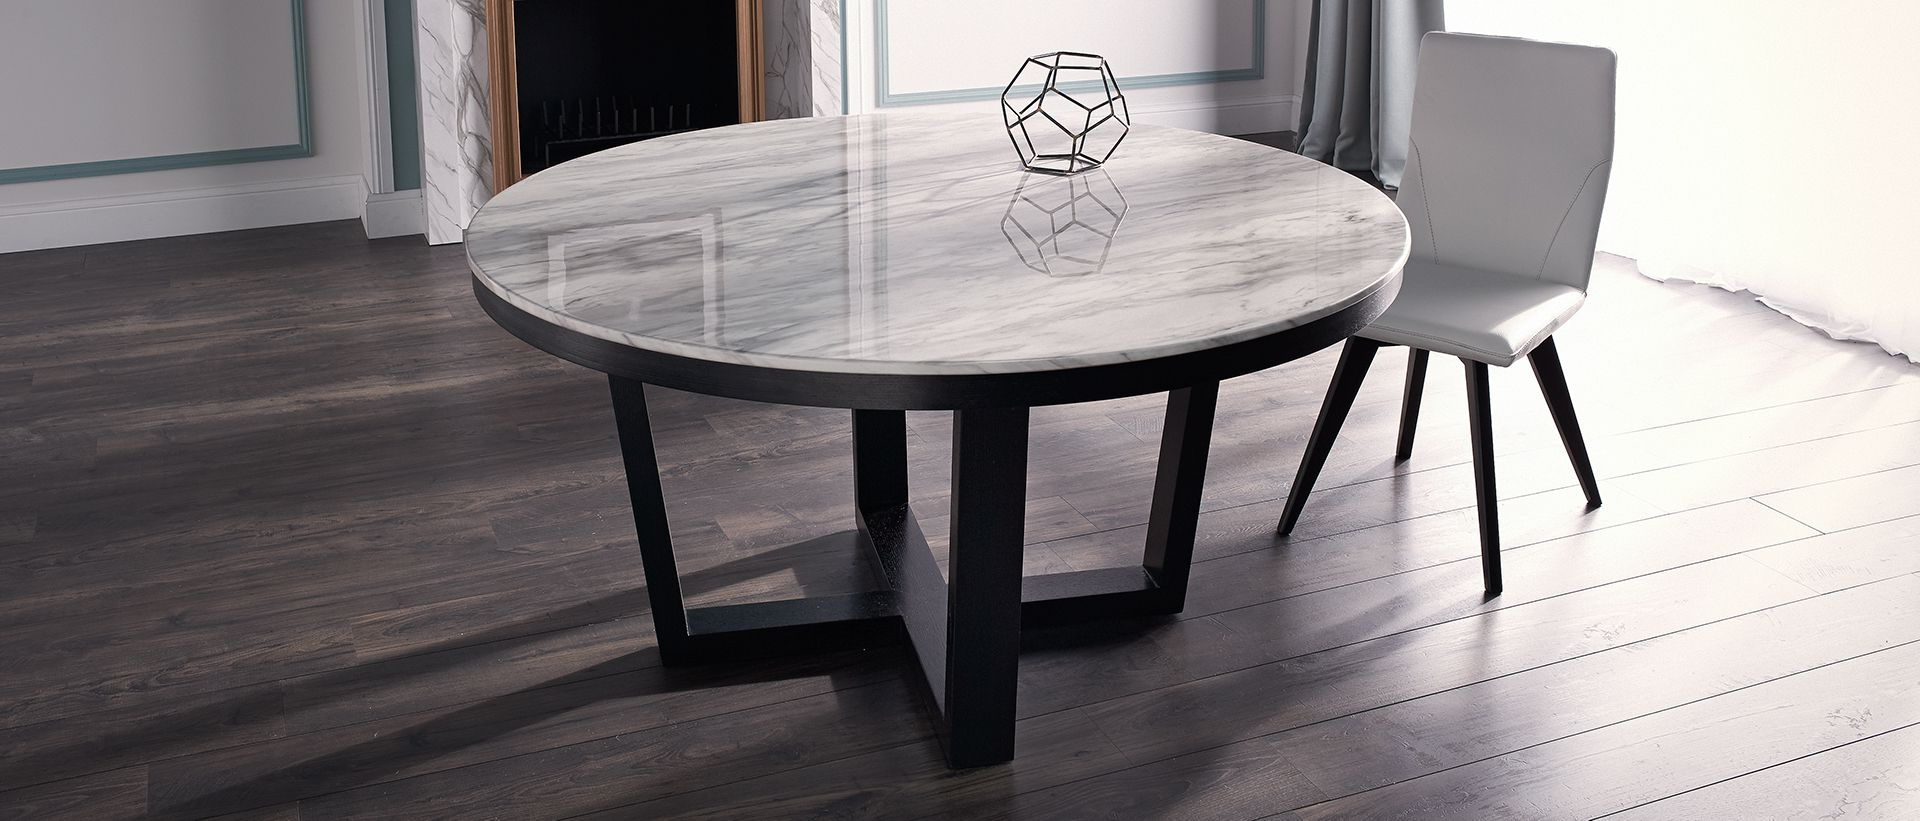 Round, Wood & Concrete Tables (View 8 of 30)